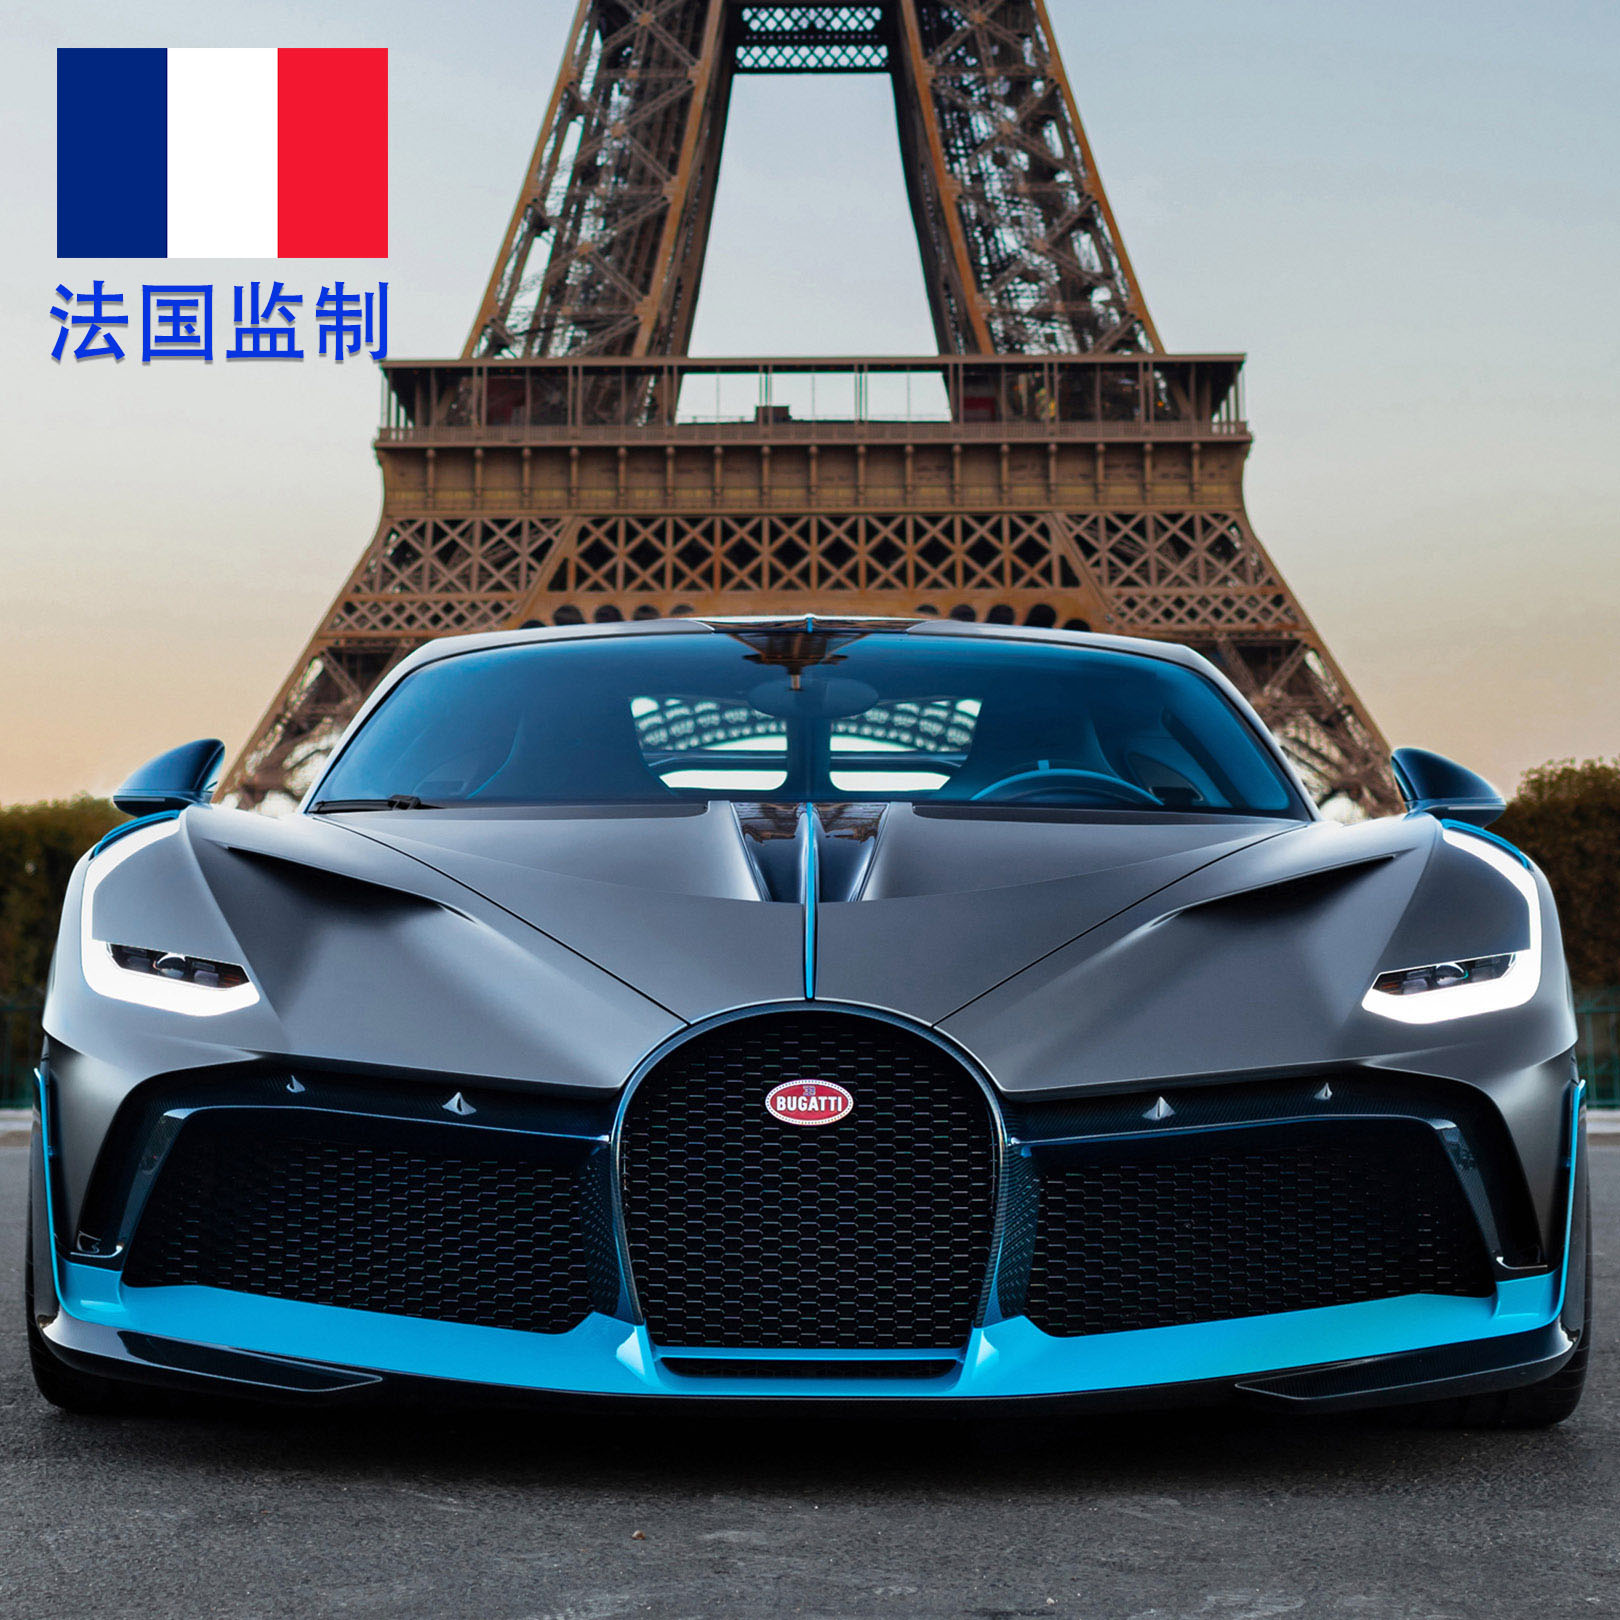 Bugatti authorized Divo children's electric car four-wheeled stroller remote control car Children's toy car can sit people